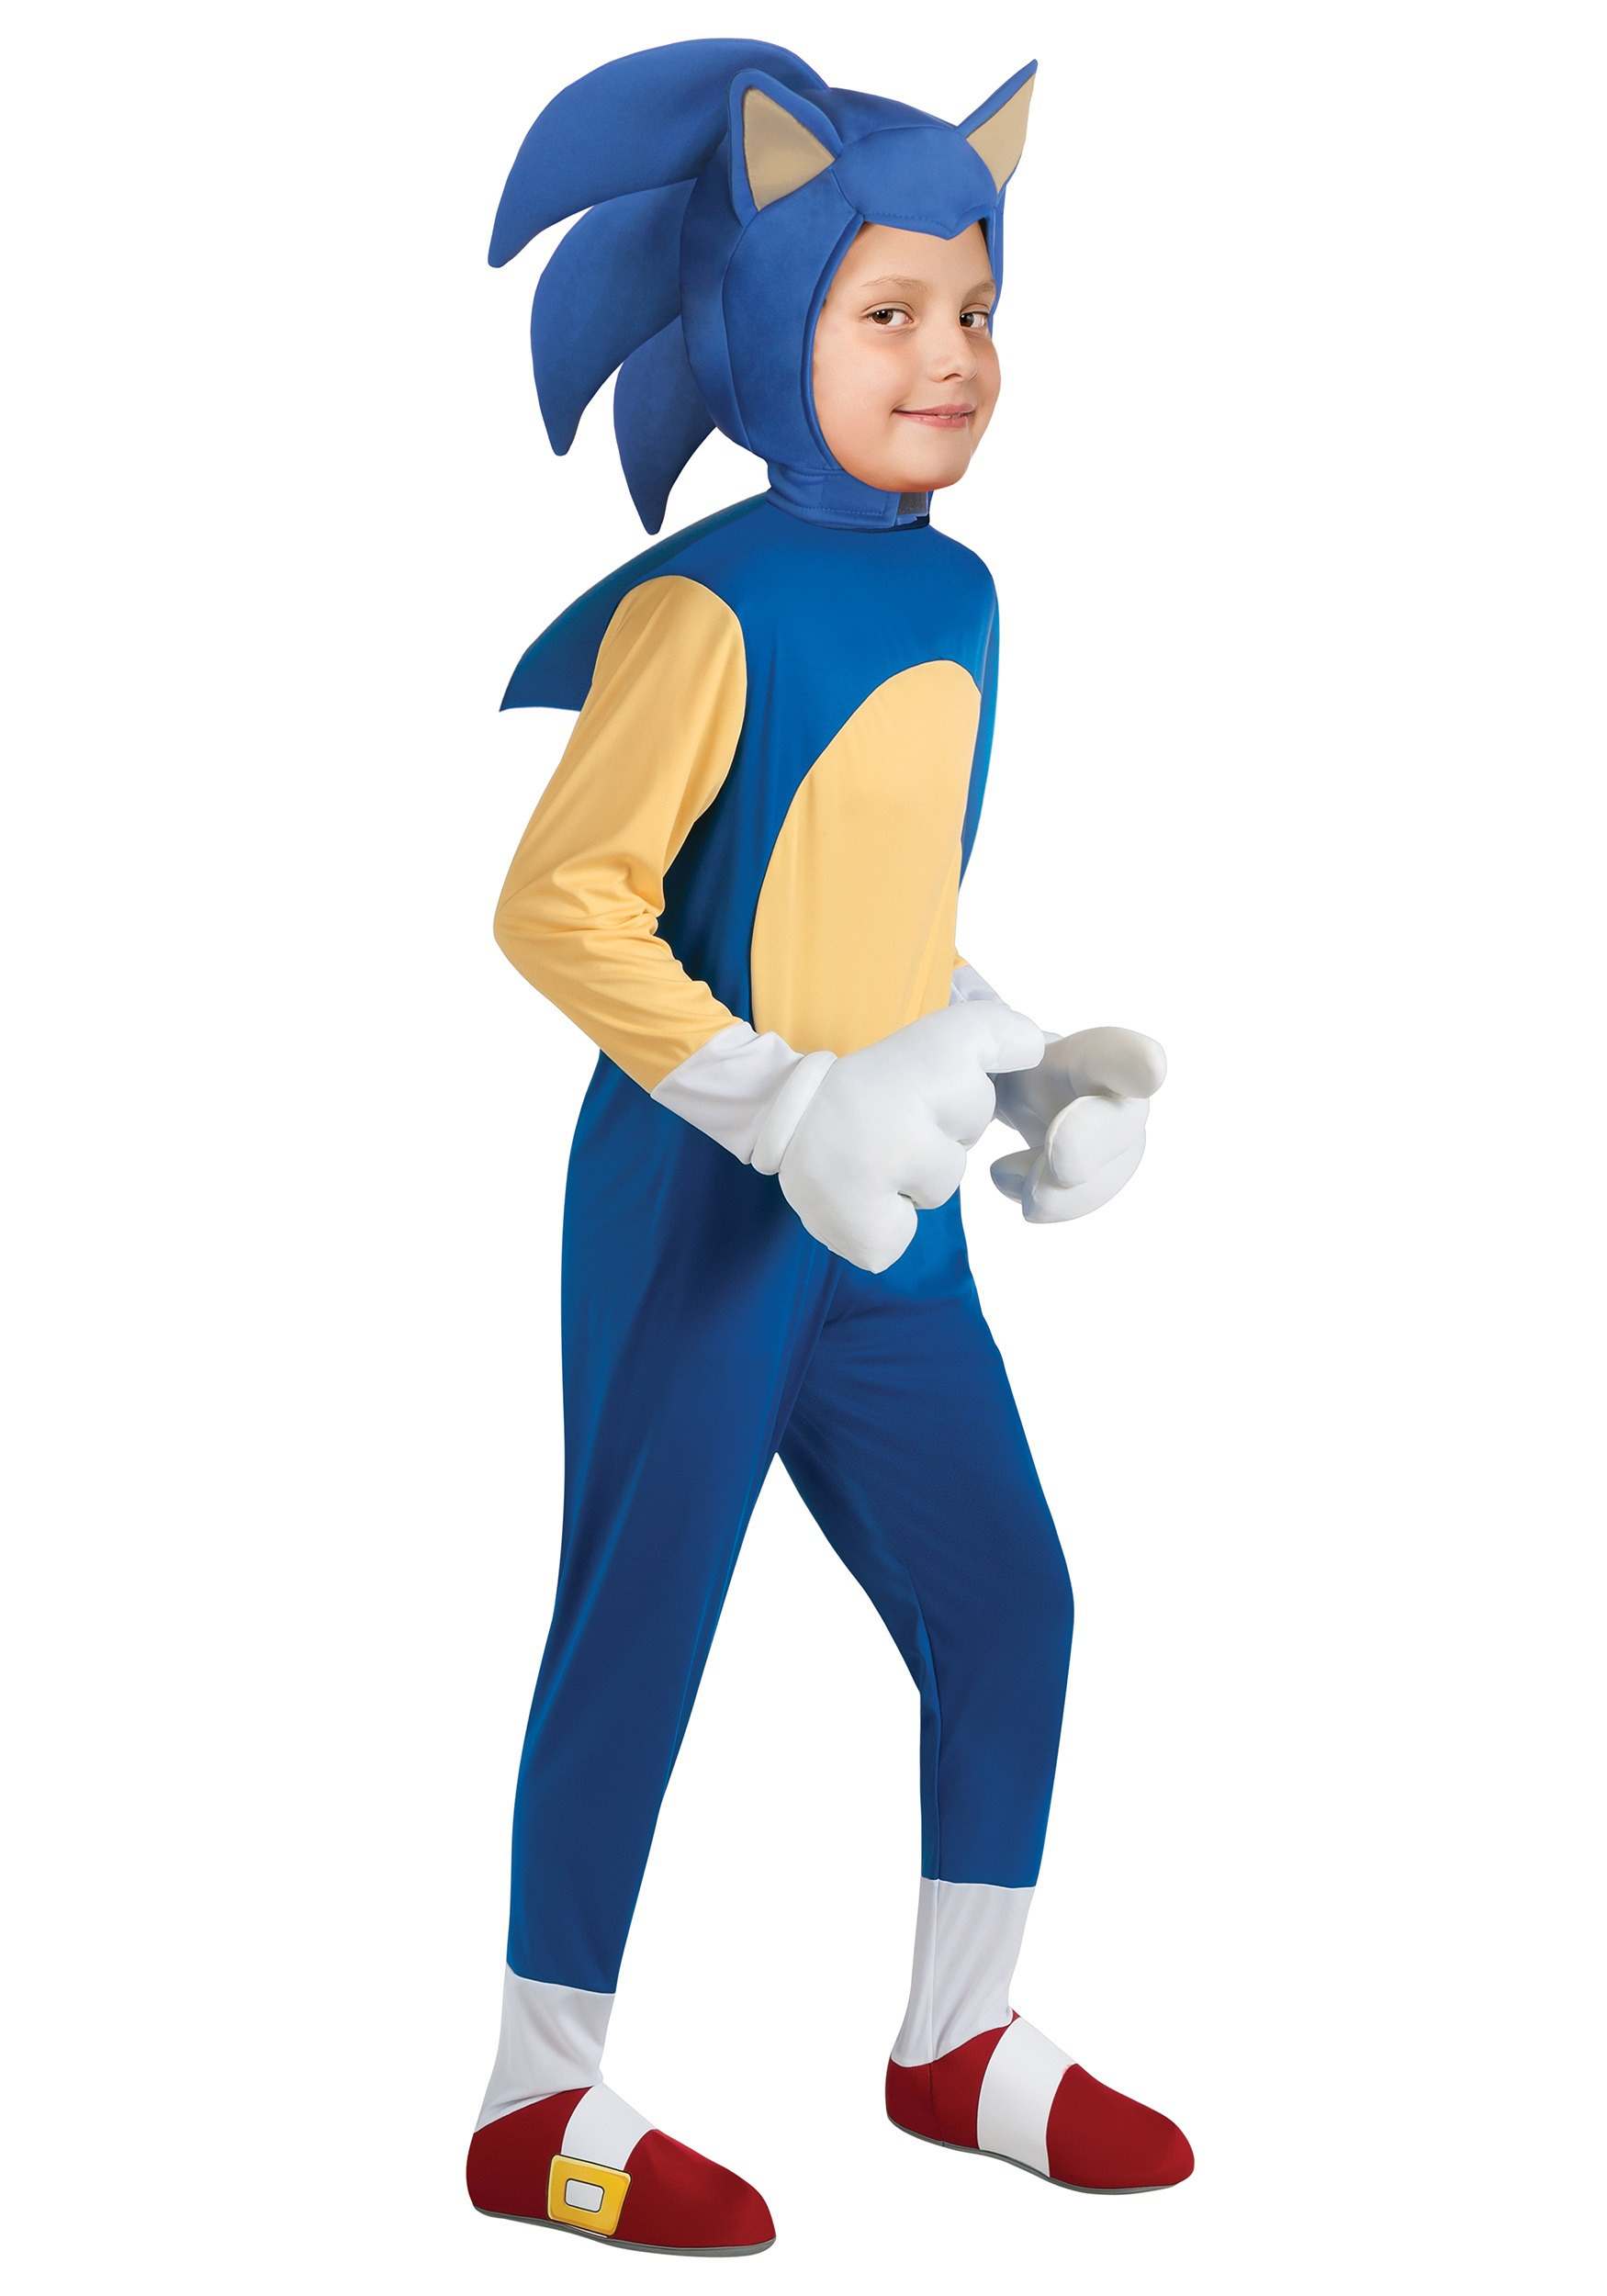 http://images.halloweencostumes.com/products/12188/1-1/child-deluxe-sonic-costume.jpg